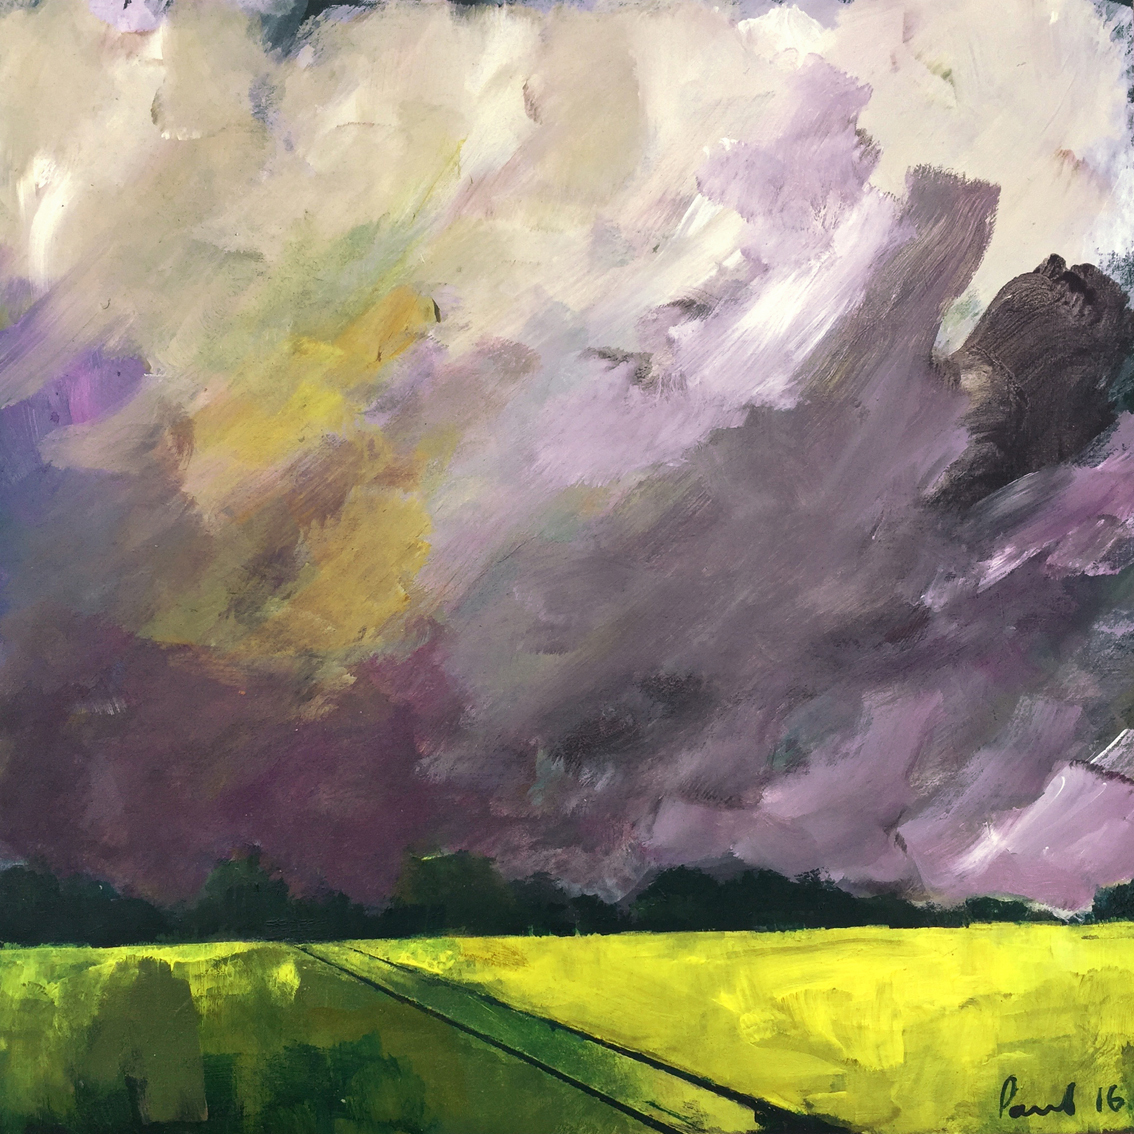 Storm   2016 | 30.5 x 30.5 x .6cm   Acrylic on board   Signed   £390 - S  OLD